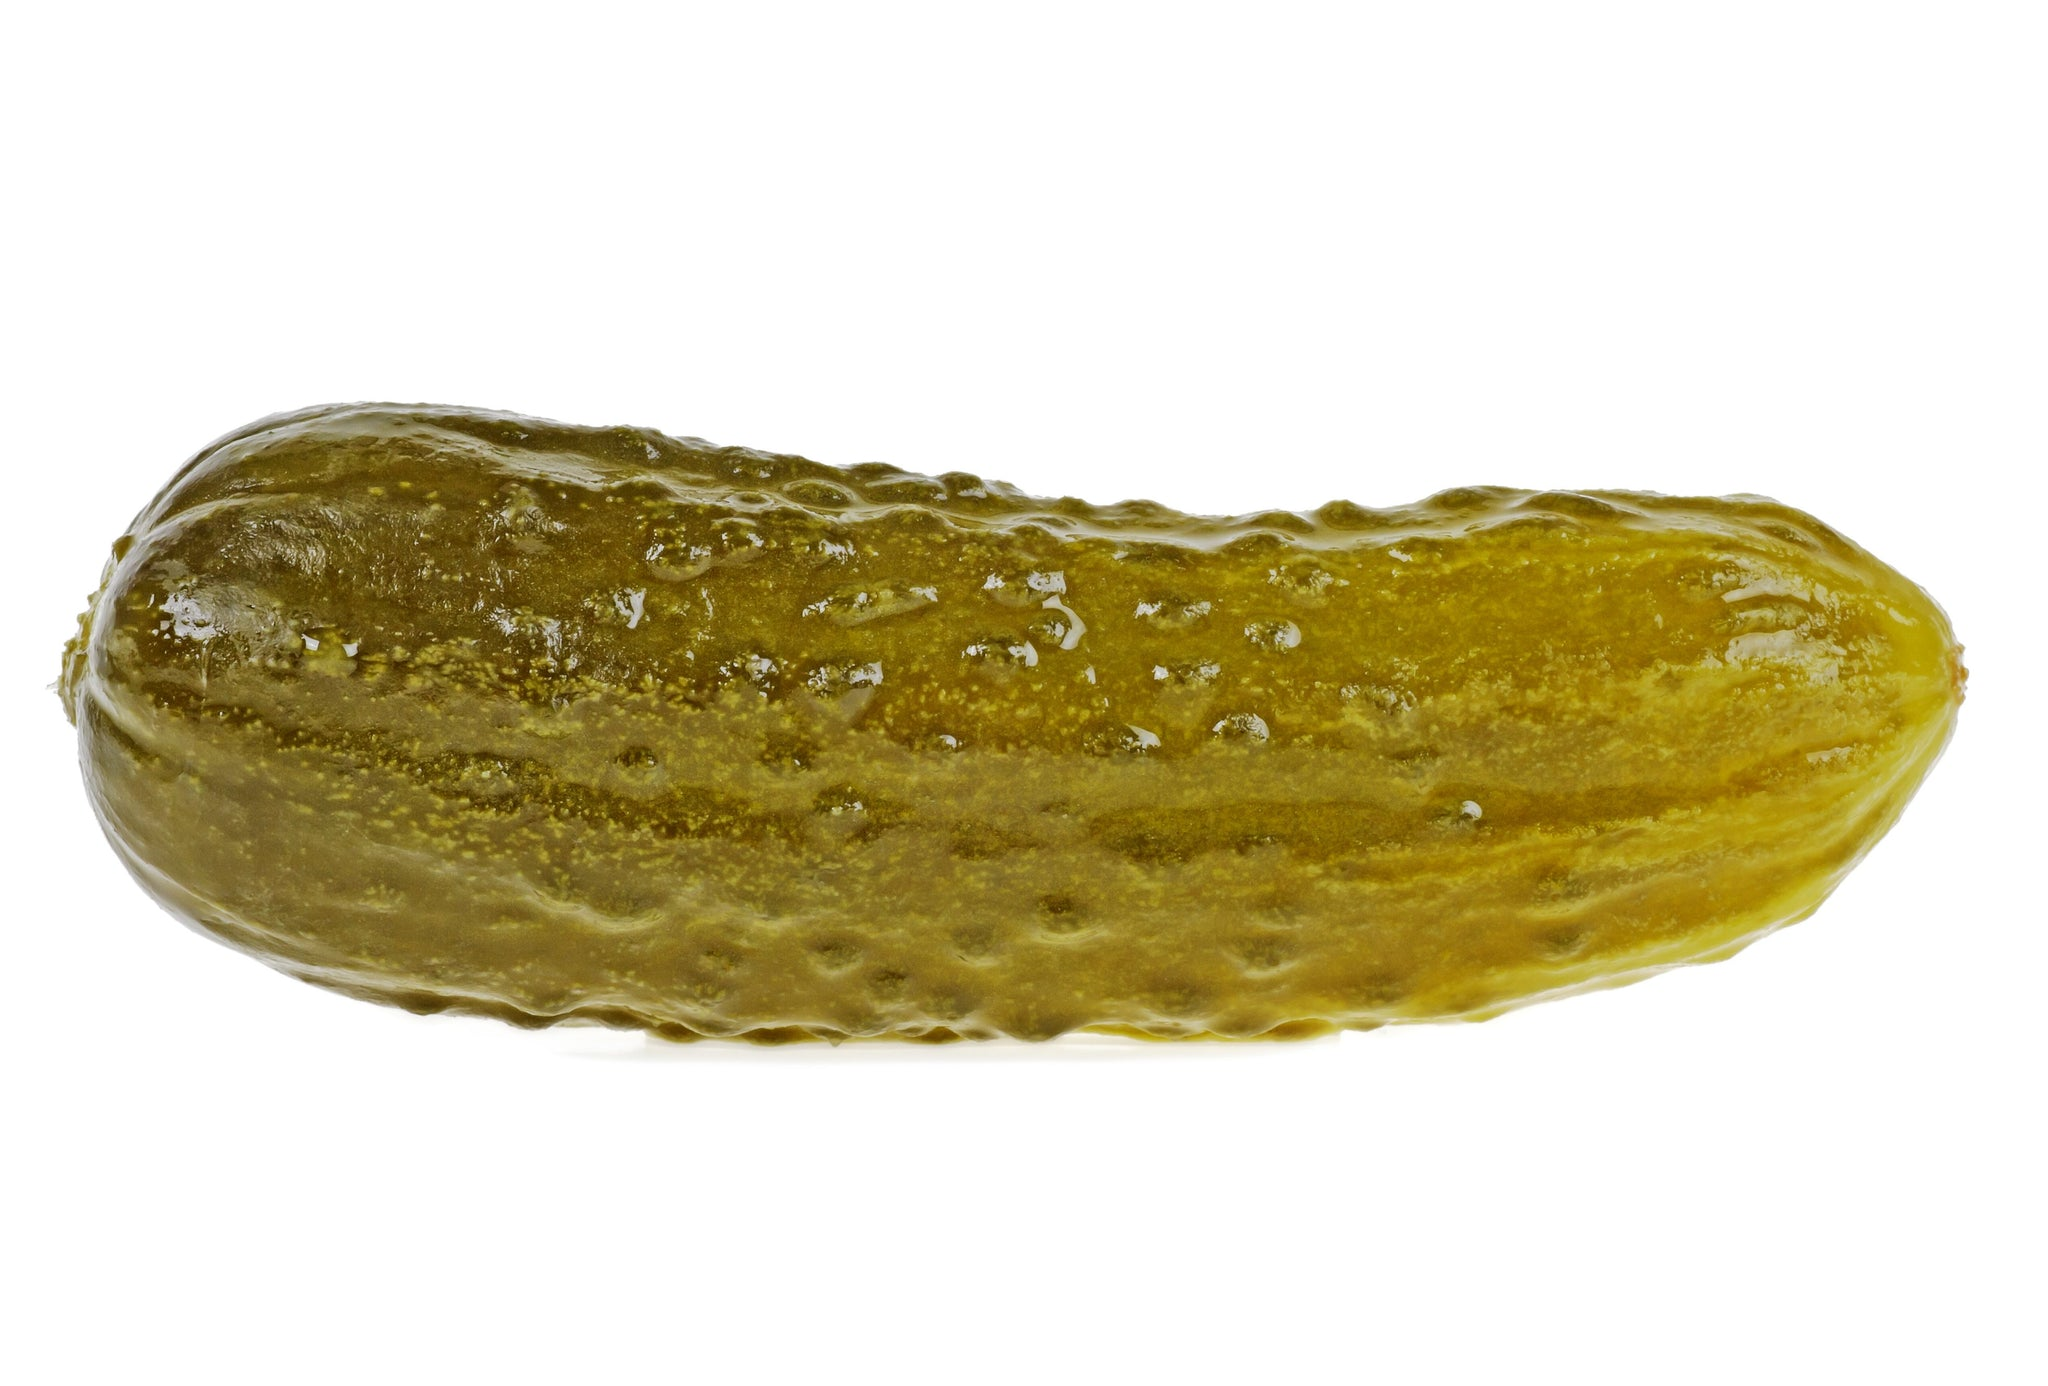 bel>Surefine Dill Pickles